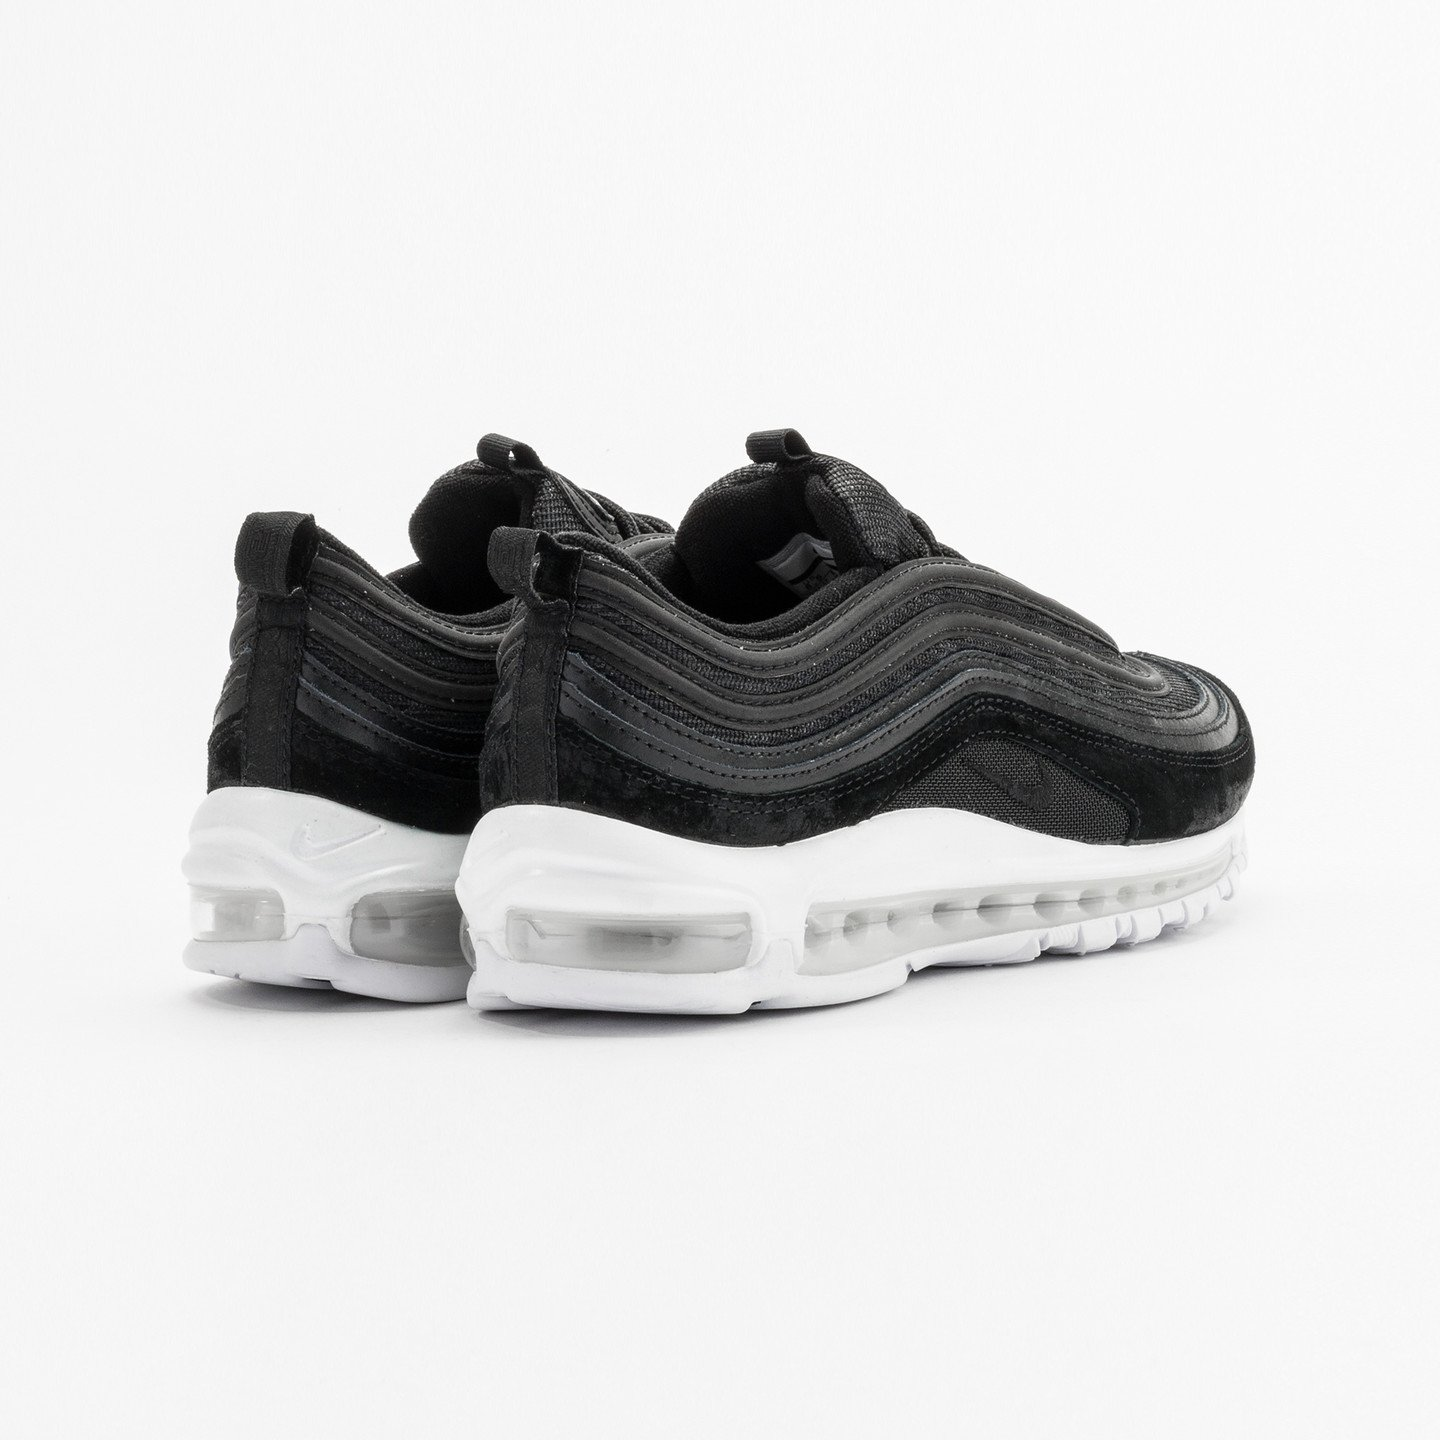 Nike Air Max 97 Black / White 921826-003